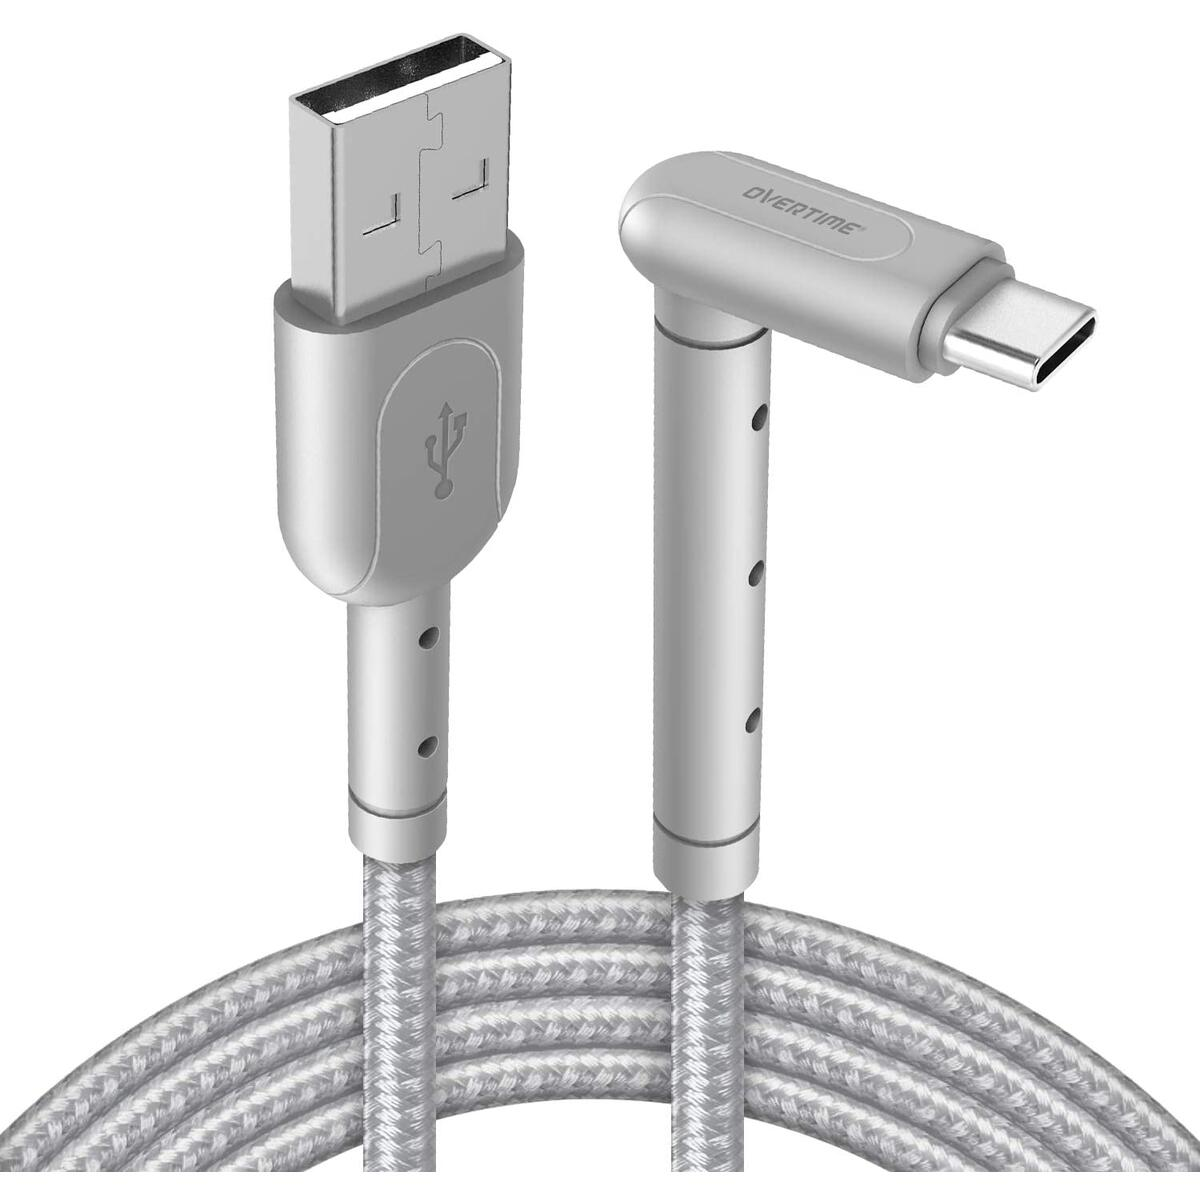 Android Phone Stand & USB Type C Charging Cable, Overtime 6ft Cable Phone Holder and USB Charger Cord